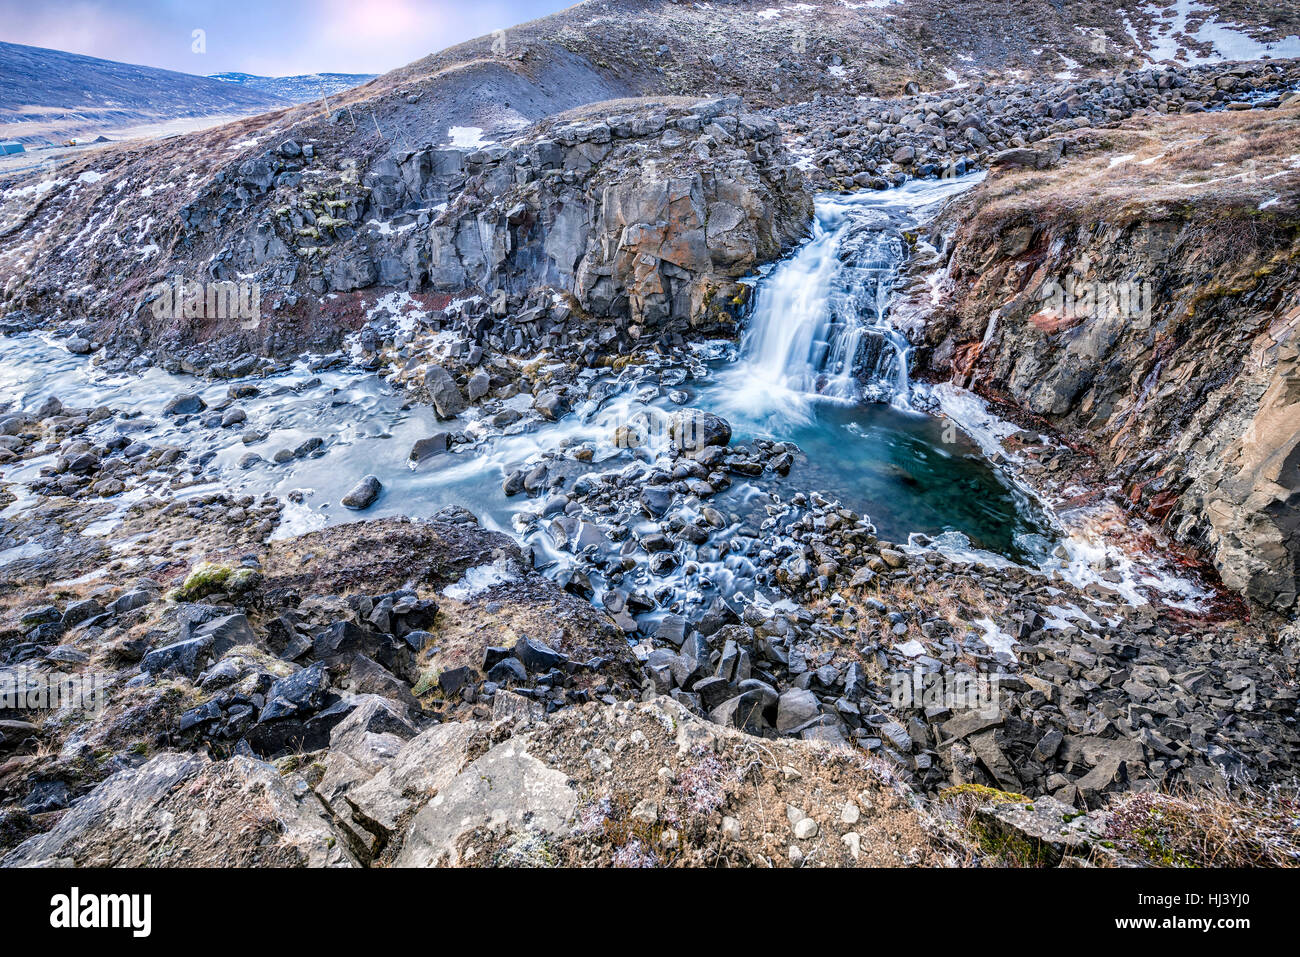 A waterfall in Iceland cascades down the side of a rugged mountain into a natural pool - Stock Image